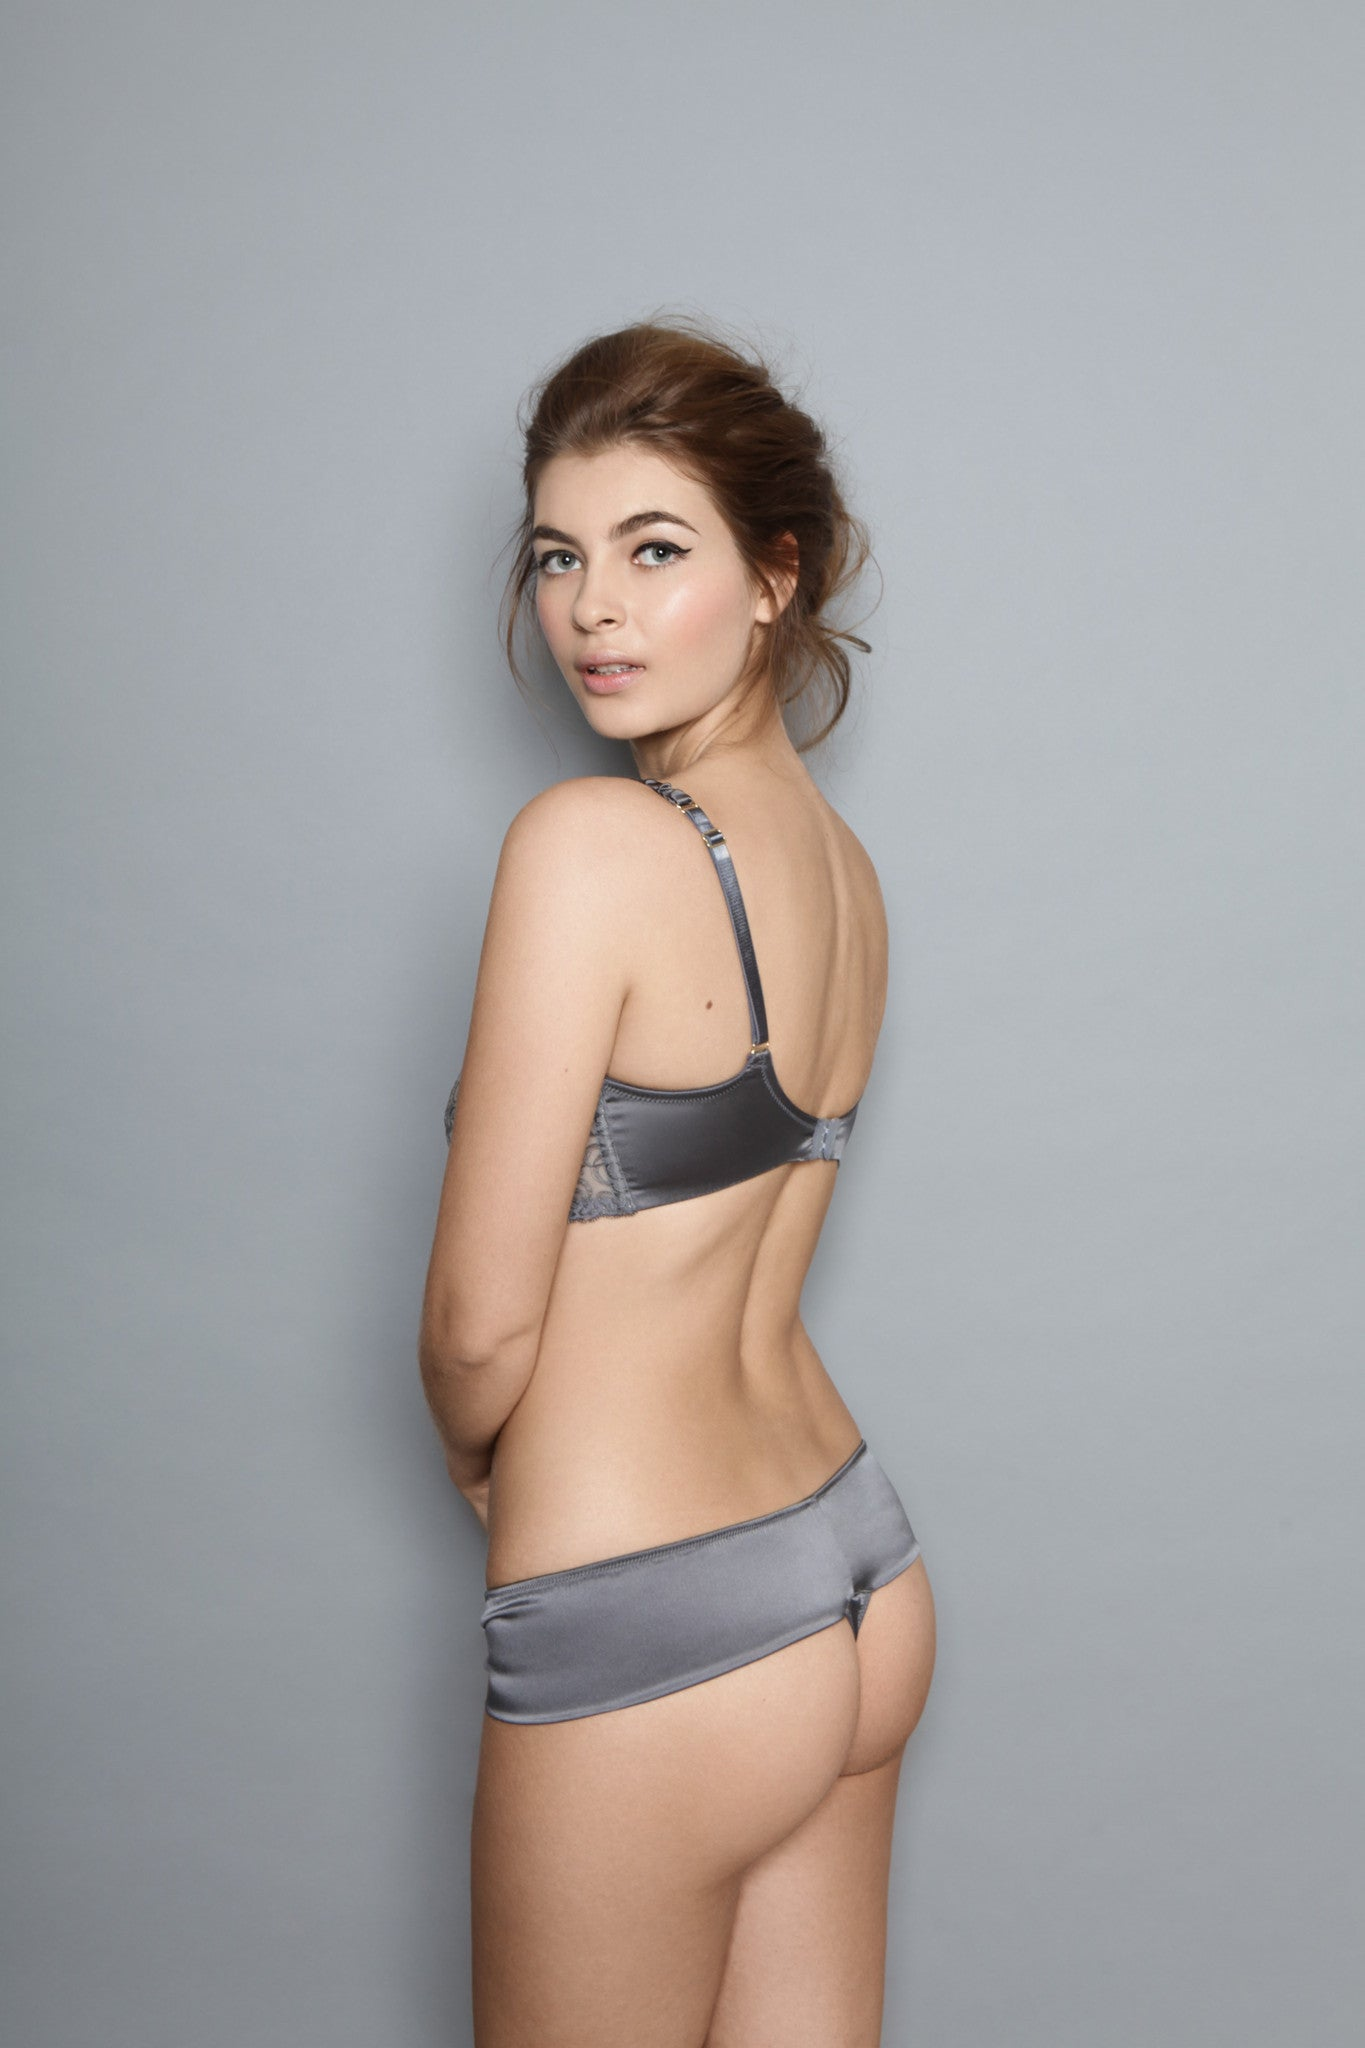 Adina Reay | Grey Bra | Luxury Lingerie | Grey Bra Brief Set